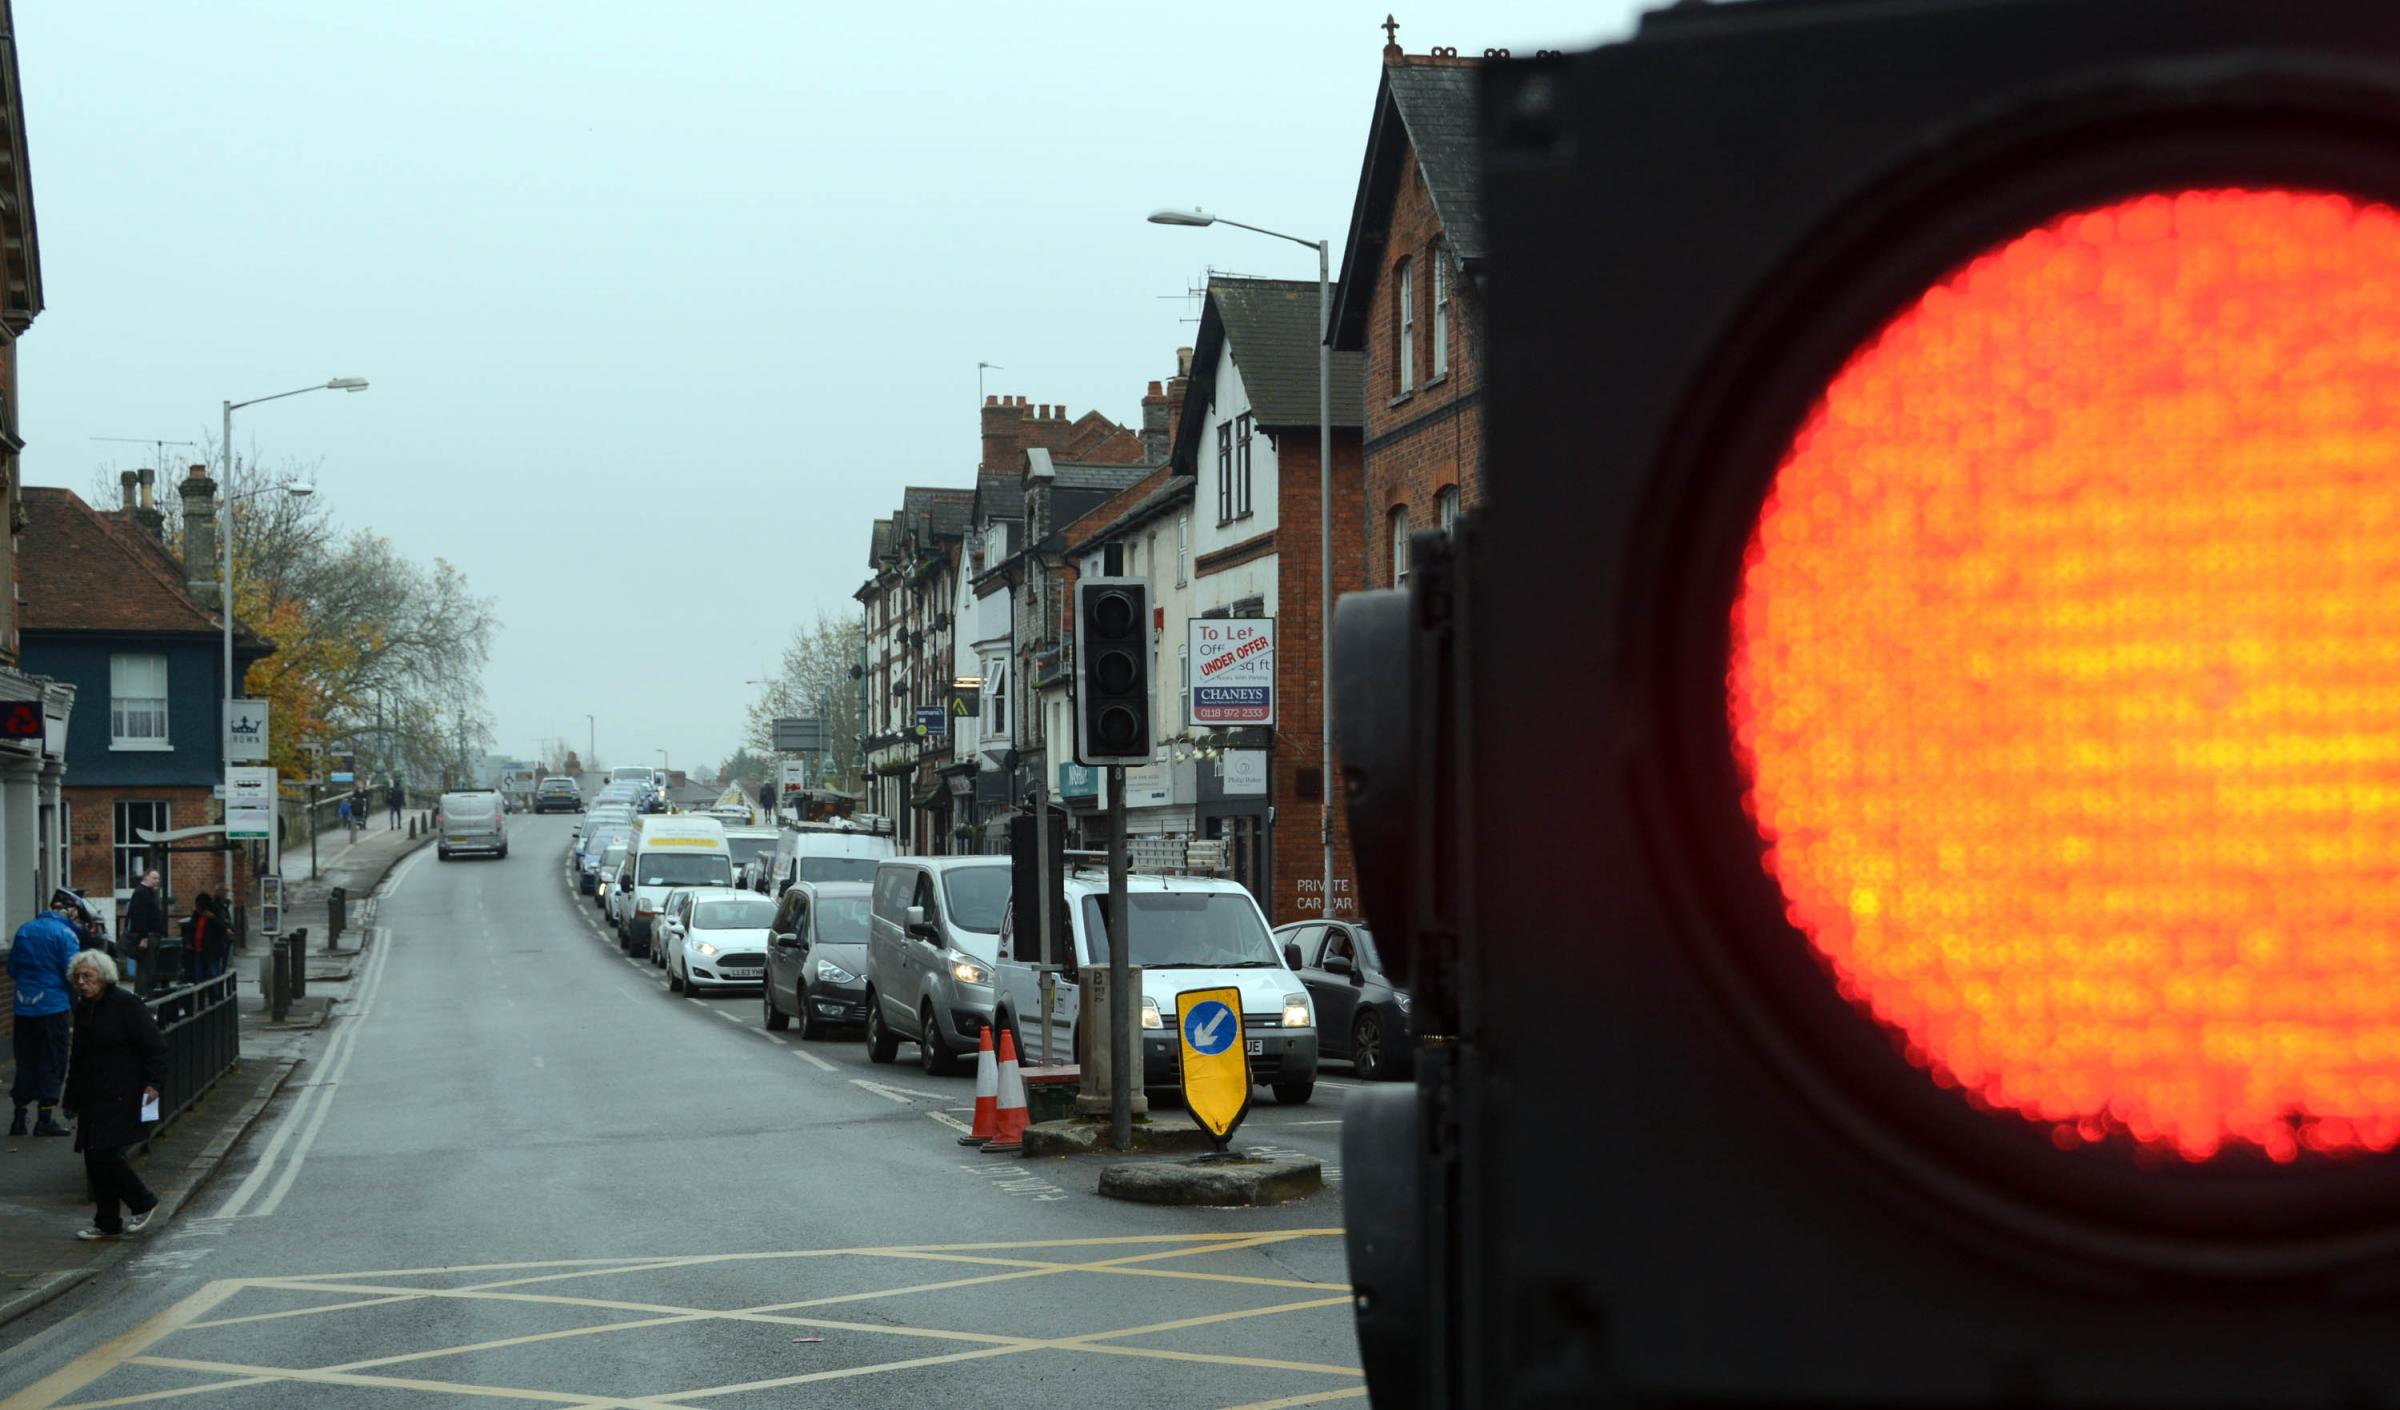 Potential misery for drivers ahead of emergency repairs